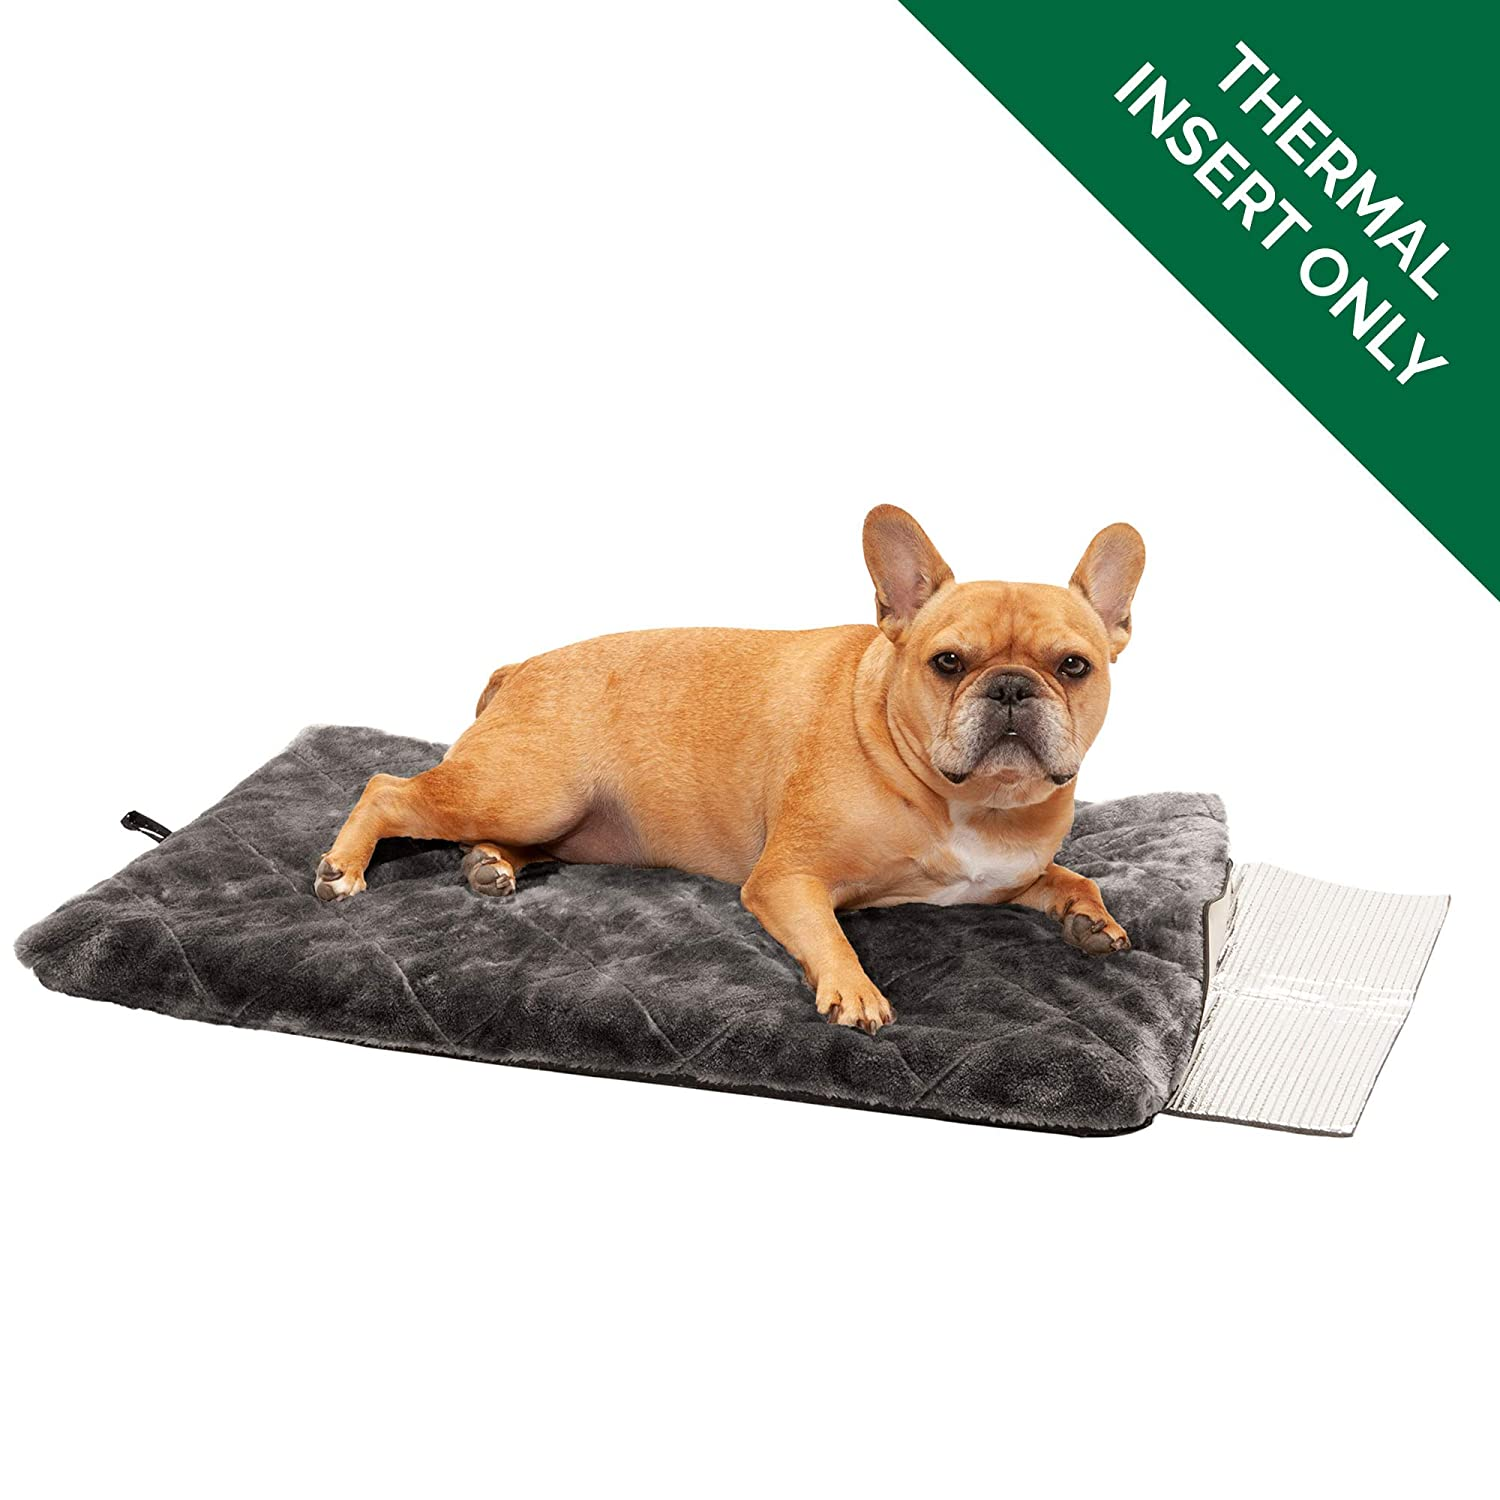 Furhaven Pet Dog Bed | Mold & Mildew Resistant Breathable Cooling Mesh Elevated Pet Cot Bed, Pet Blanket, & Self-Warming Pet Mat Insert for Dogs & Cats - Available in Multiple Colors & Sizes